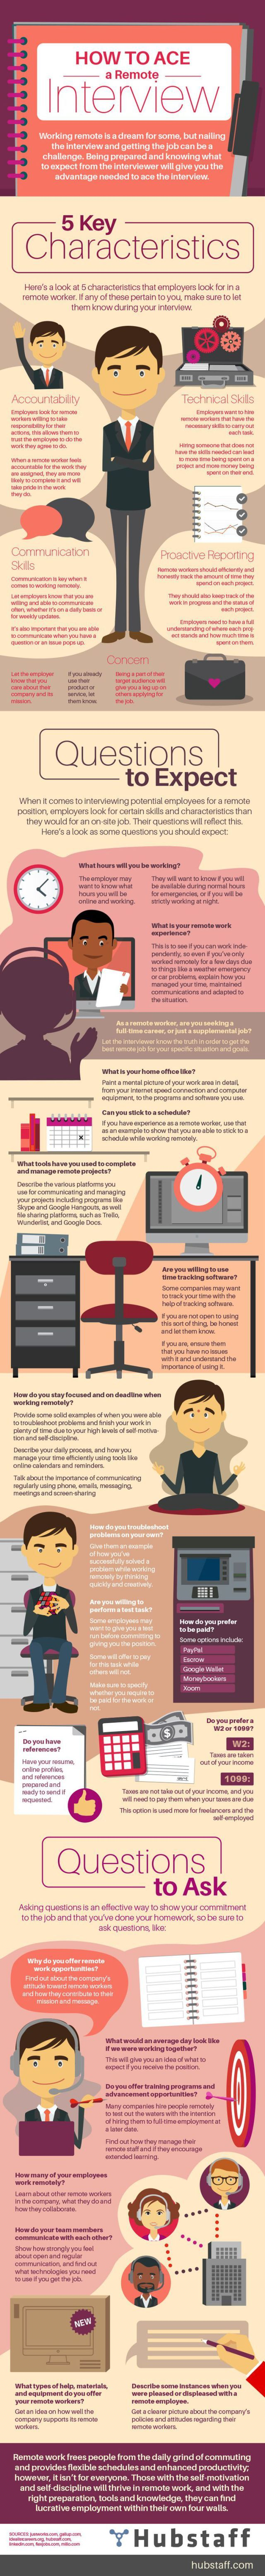 infographic When it comes to interviewing